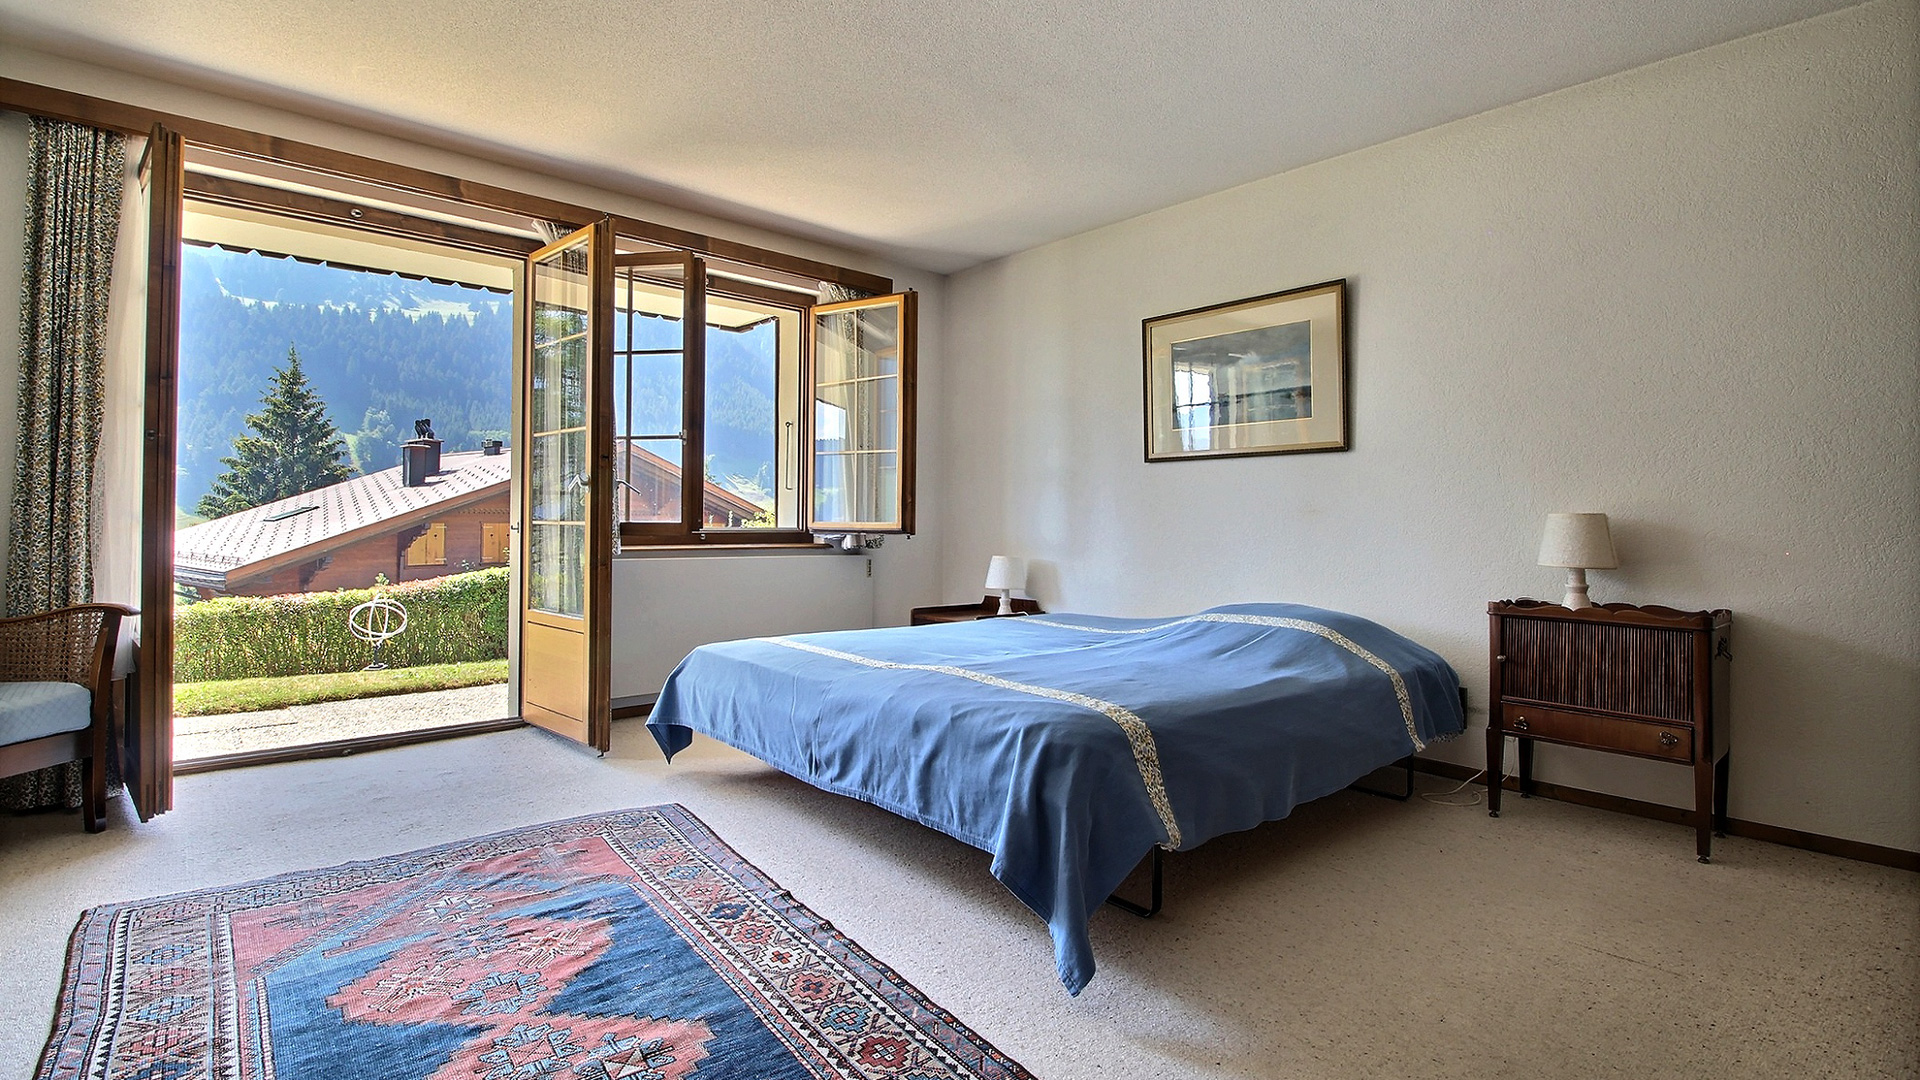 Chalet Vue Verte Apartments, Switzerland